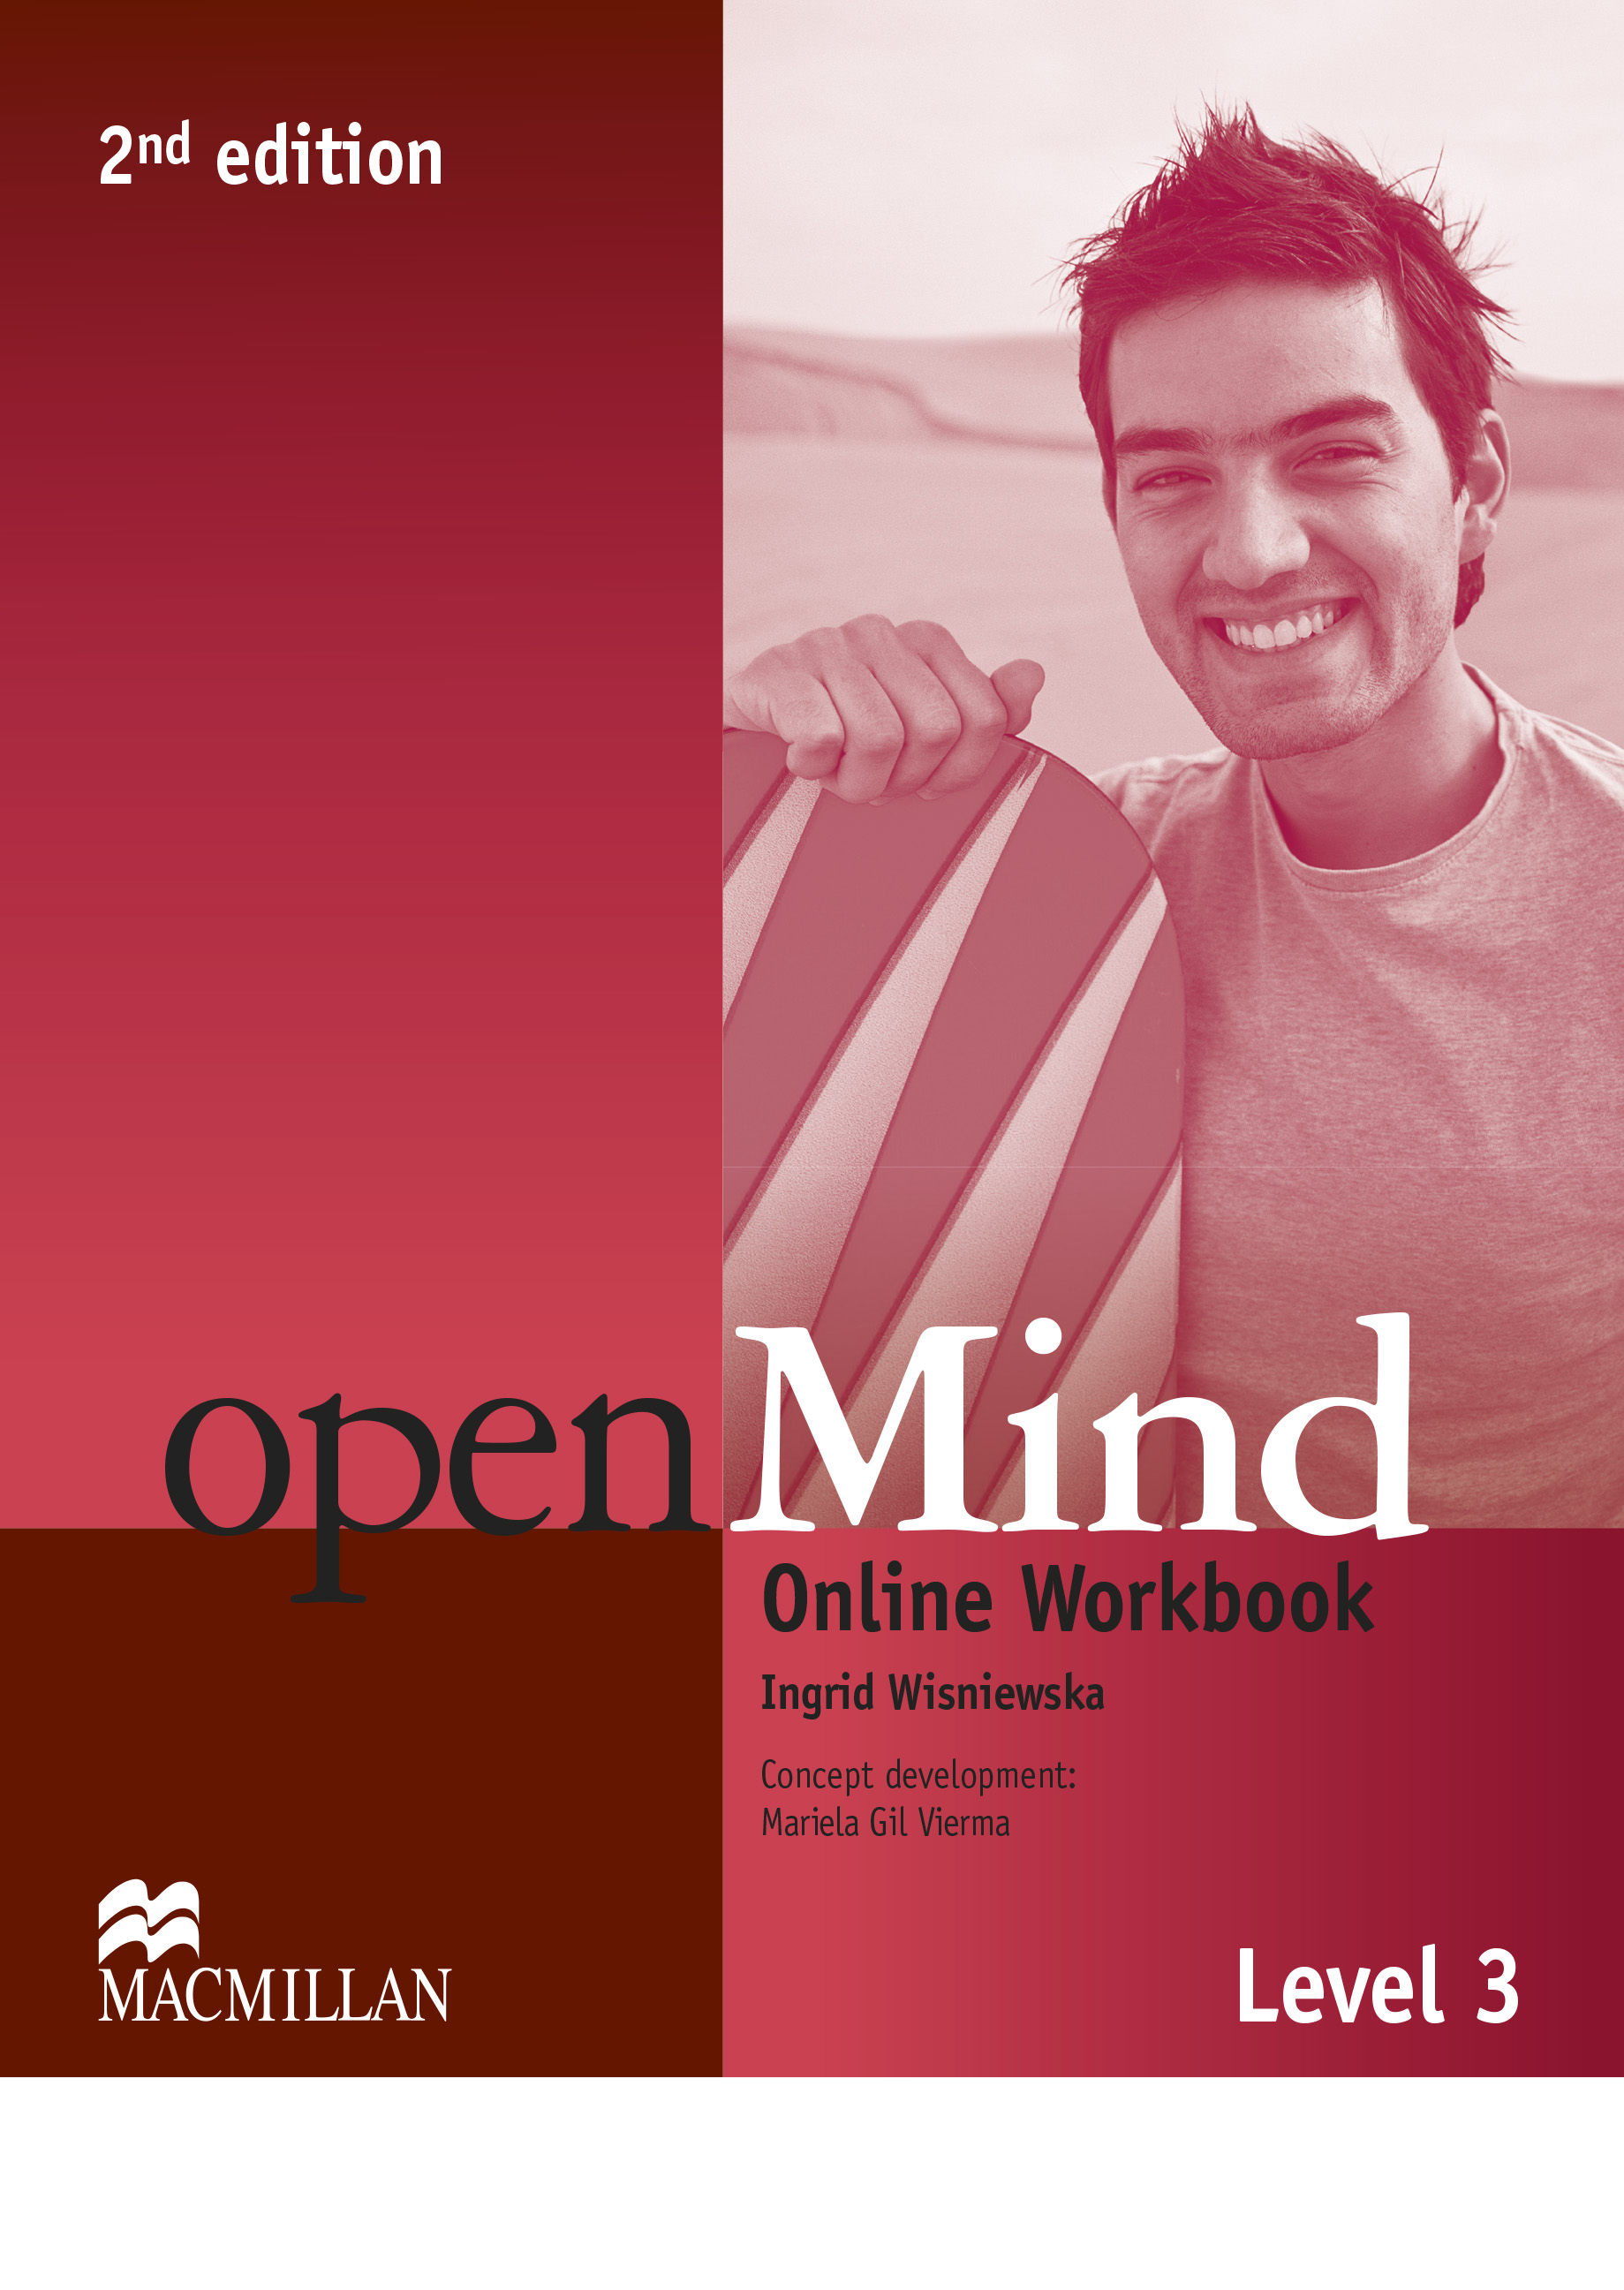 openMind 2nd Edition Level 3 Online Workbook